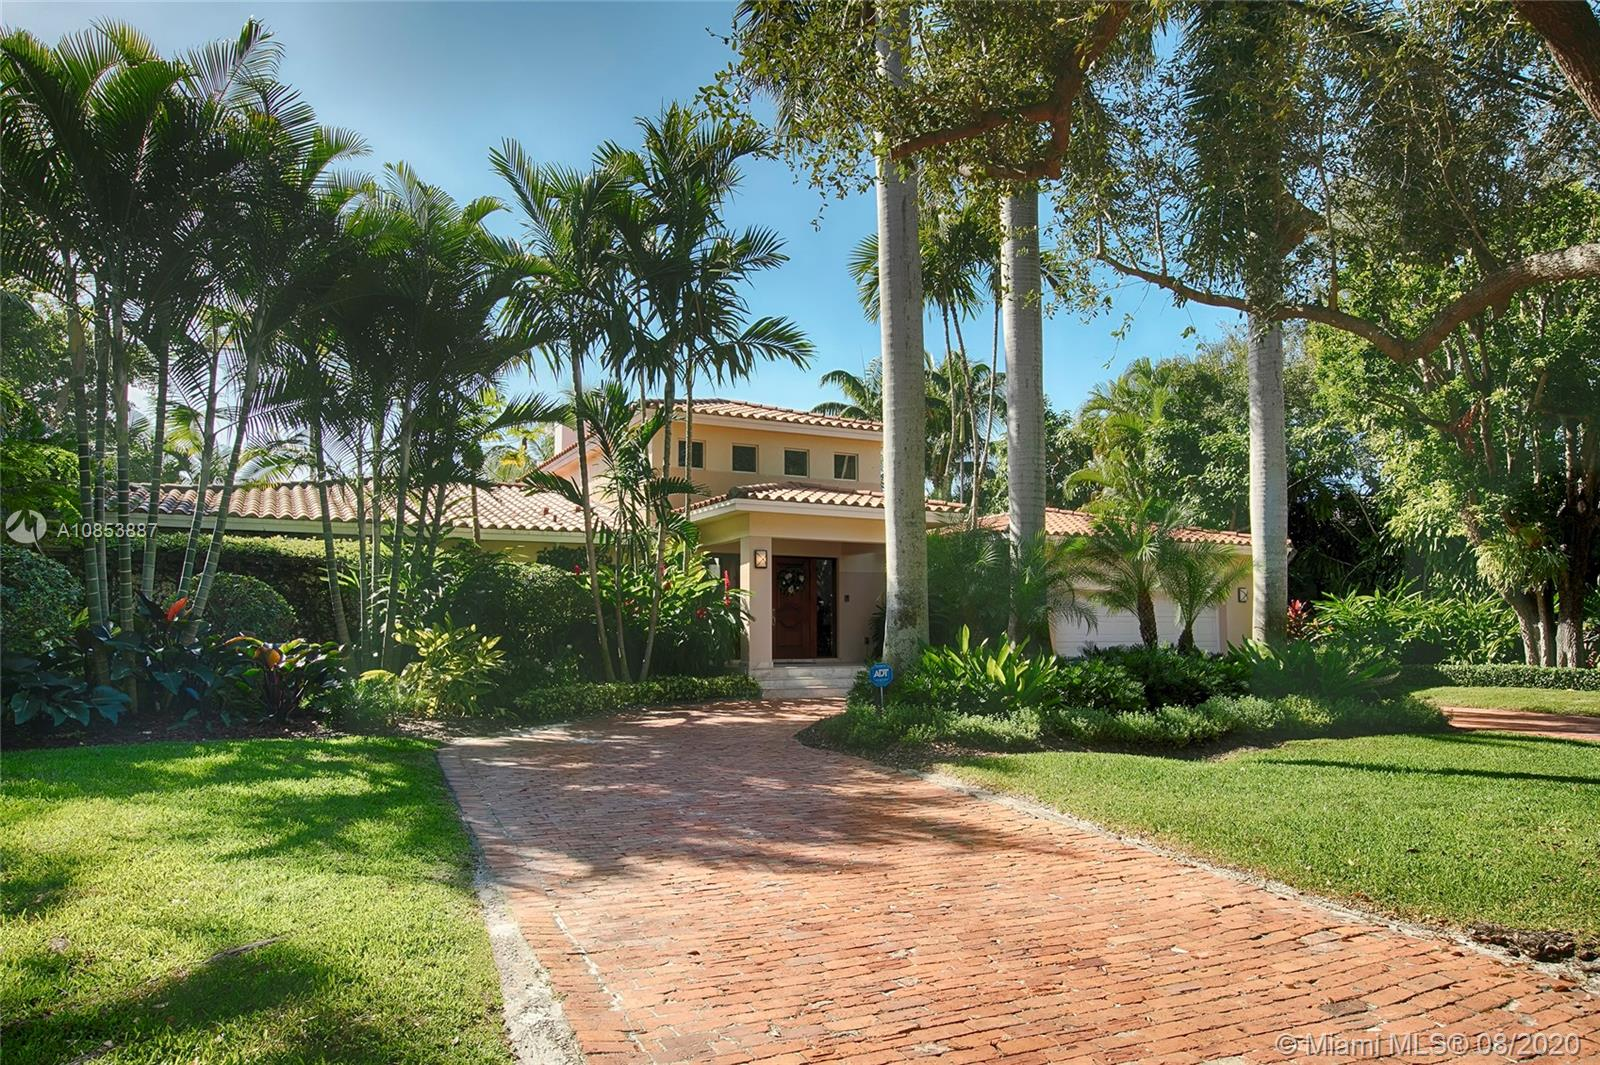 808 Jeronimo Dr, Coral Gables, Florida 33146, 4 Bedrooms Bedrooms, 2 Rooms Rooms,4 BathroomsBathrooms,Residential,For Sale,808 Jeronimo Dr,A10853887